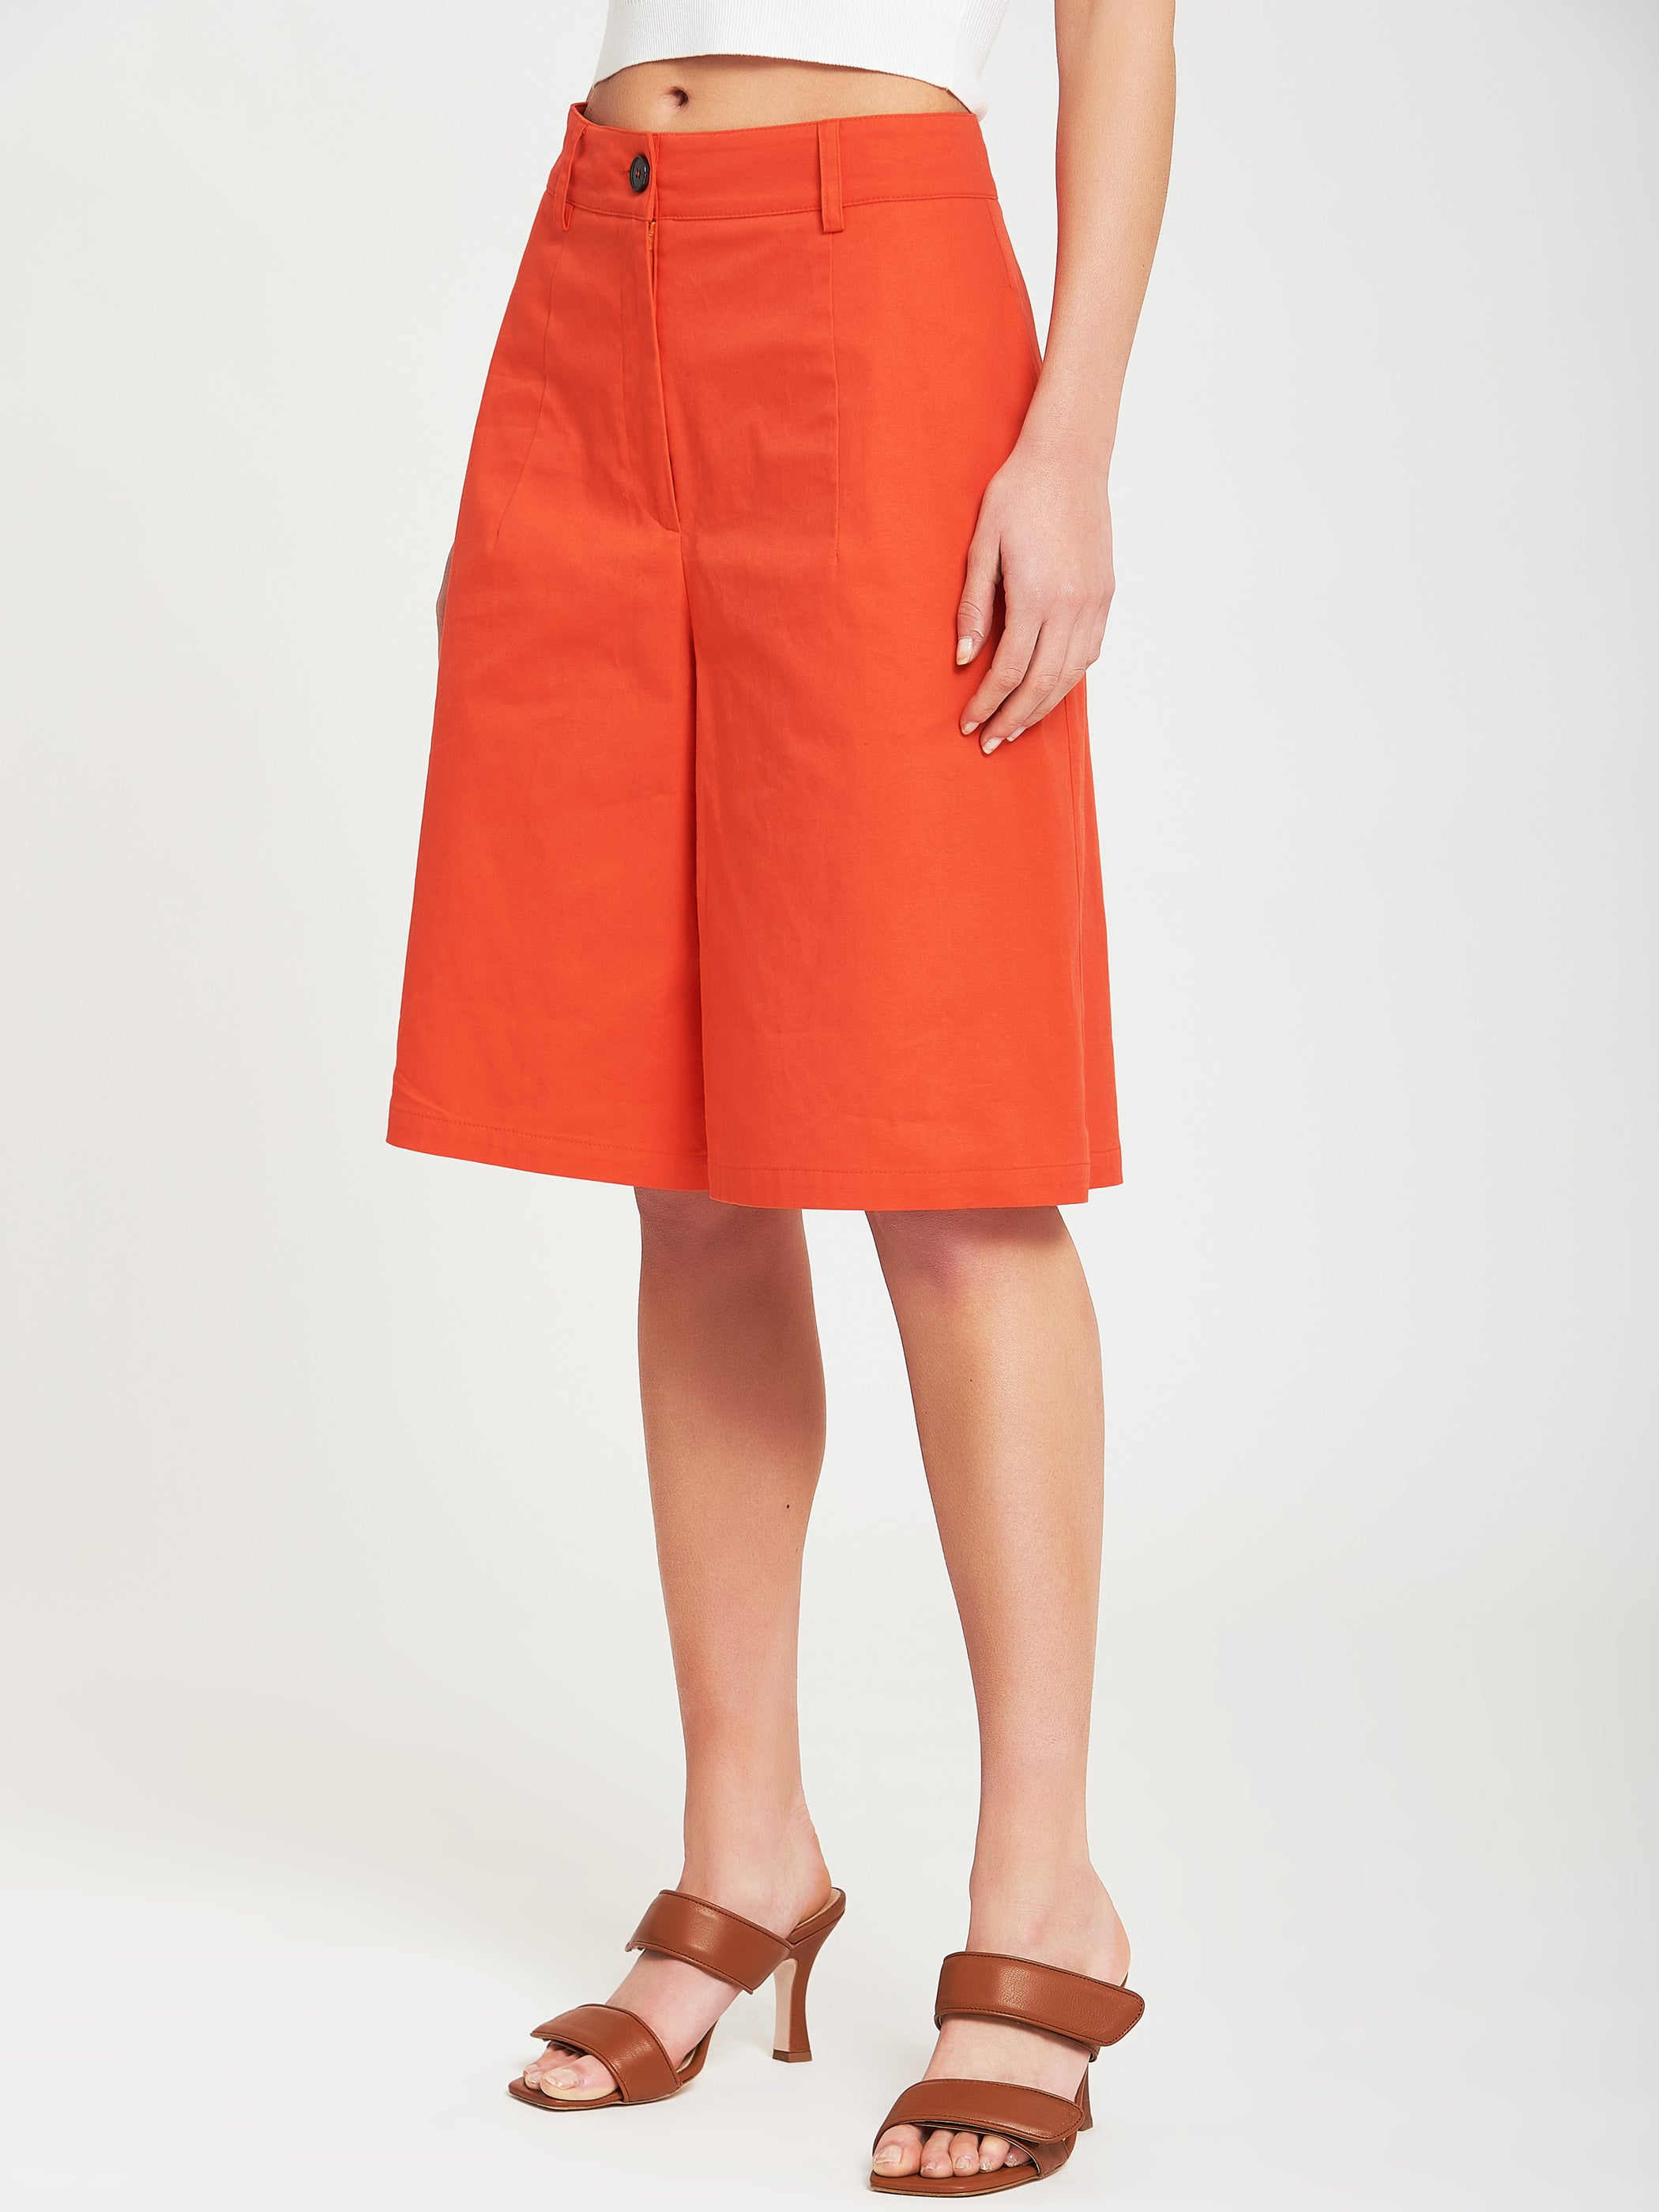 Textured bermuda shorts